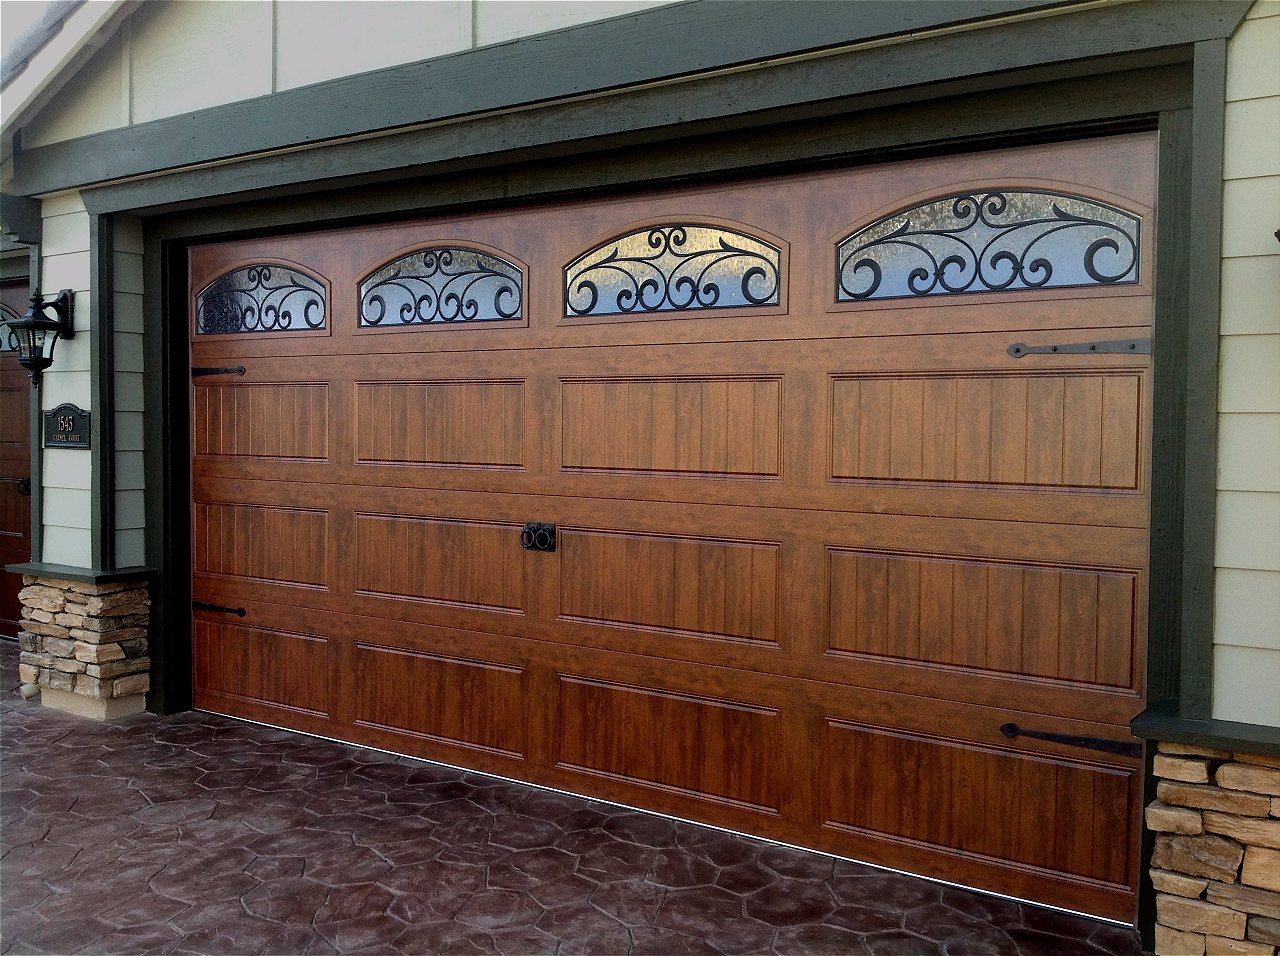 Clopay Gallery Steel Woodgrain Garage Doors | On Trac Garage Doors